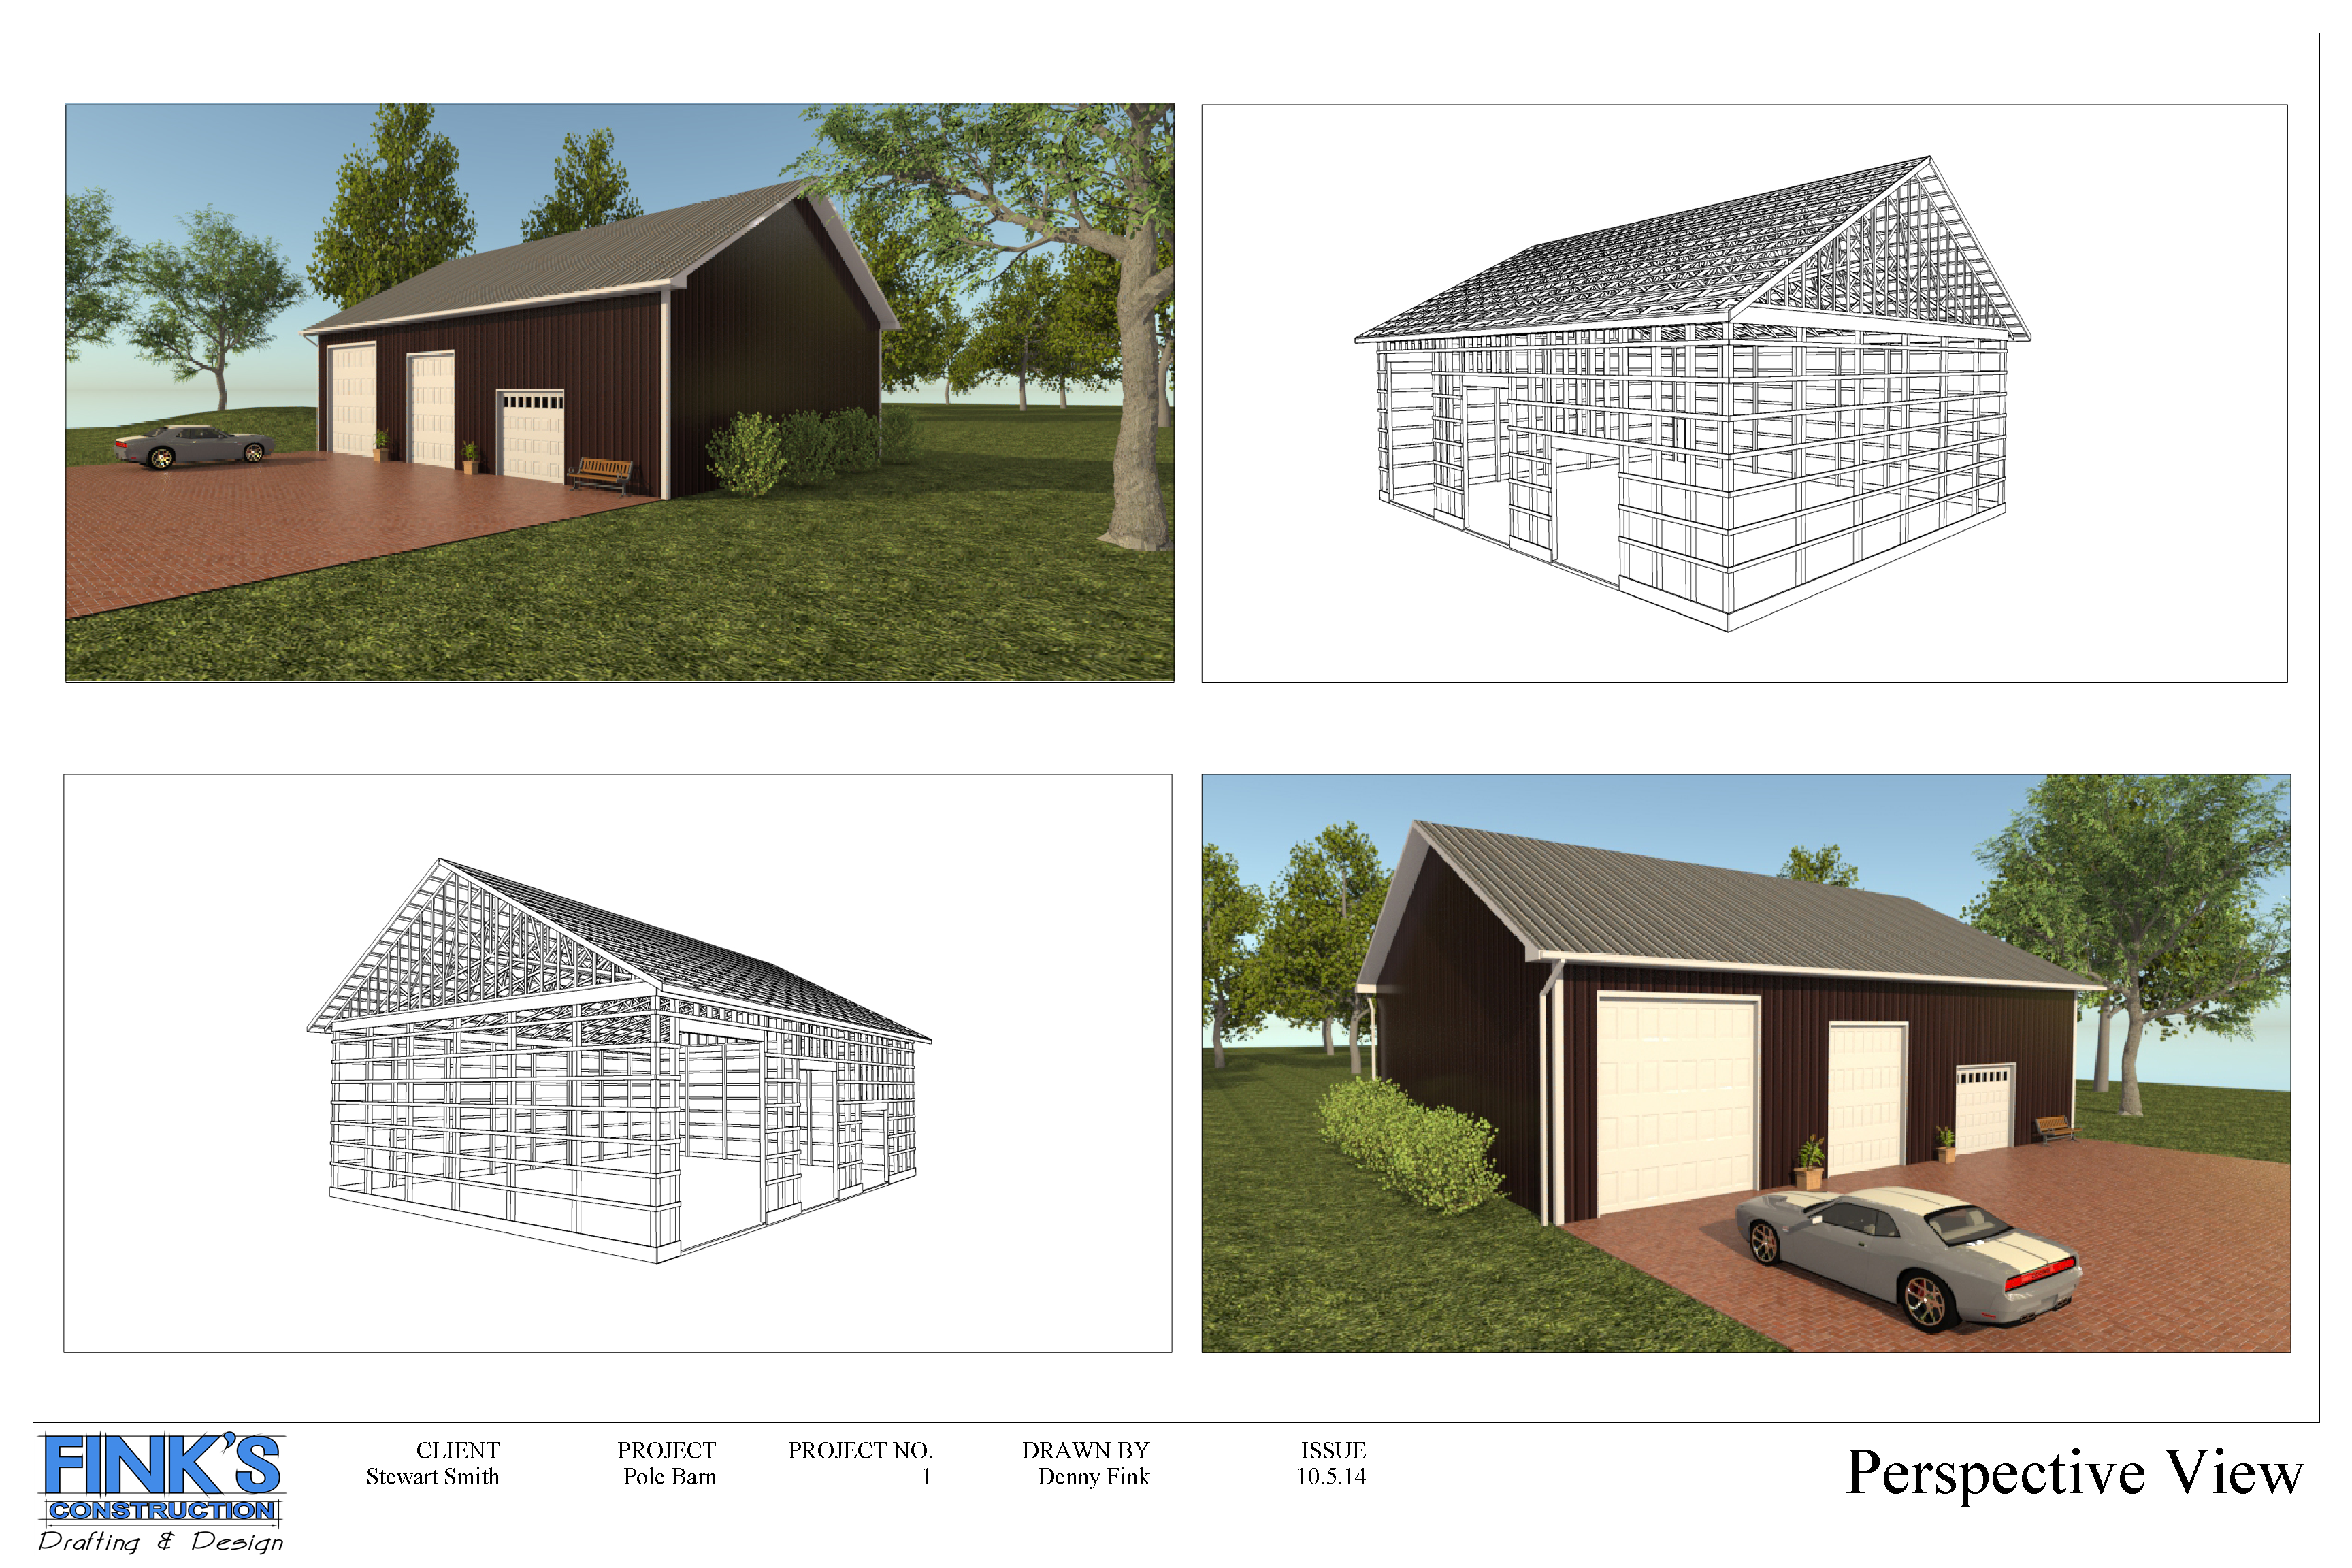 Finks Construction and Design | Drafting and Design